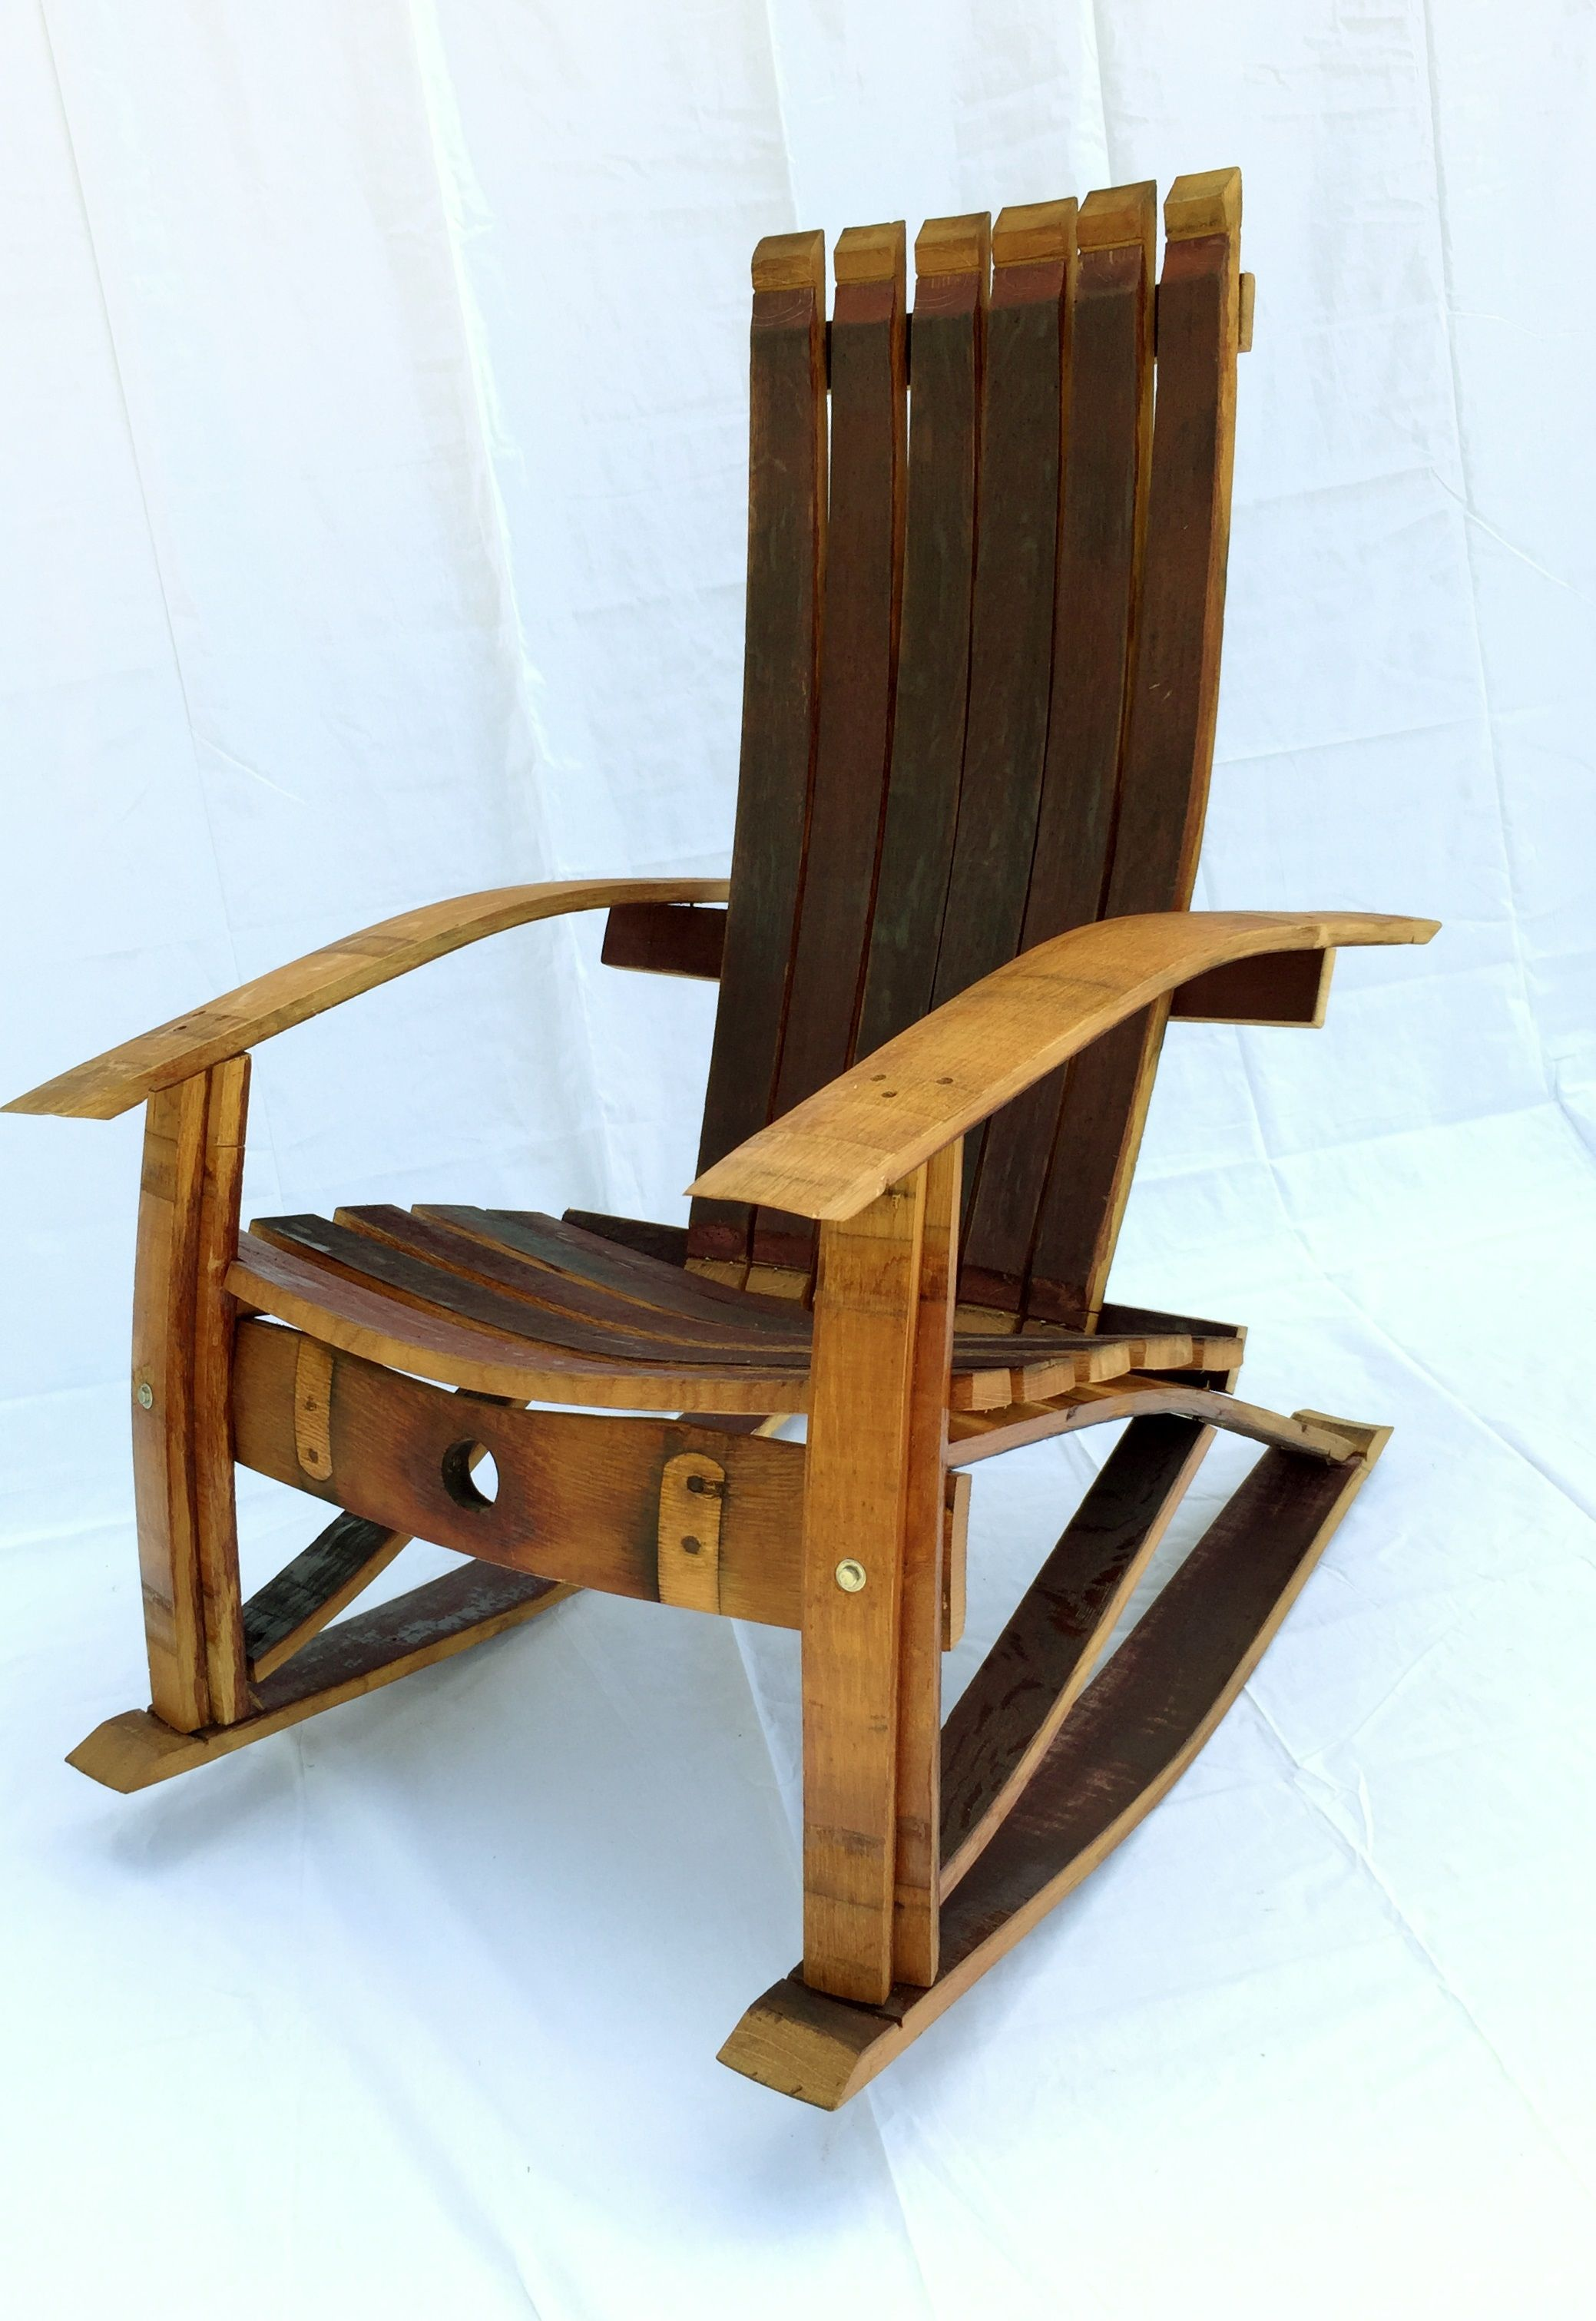 diy wine barrel rocking chair wood plans very simple to build with full scale woodworking plans that come with step by step instructions